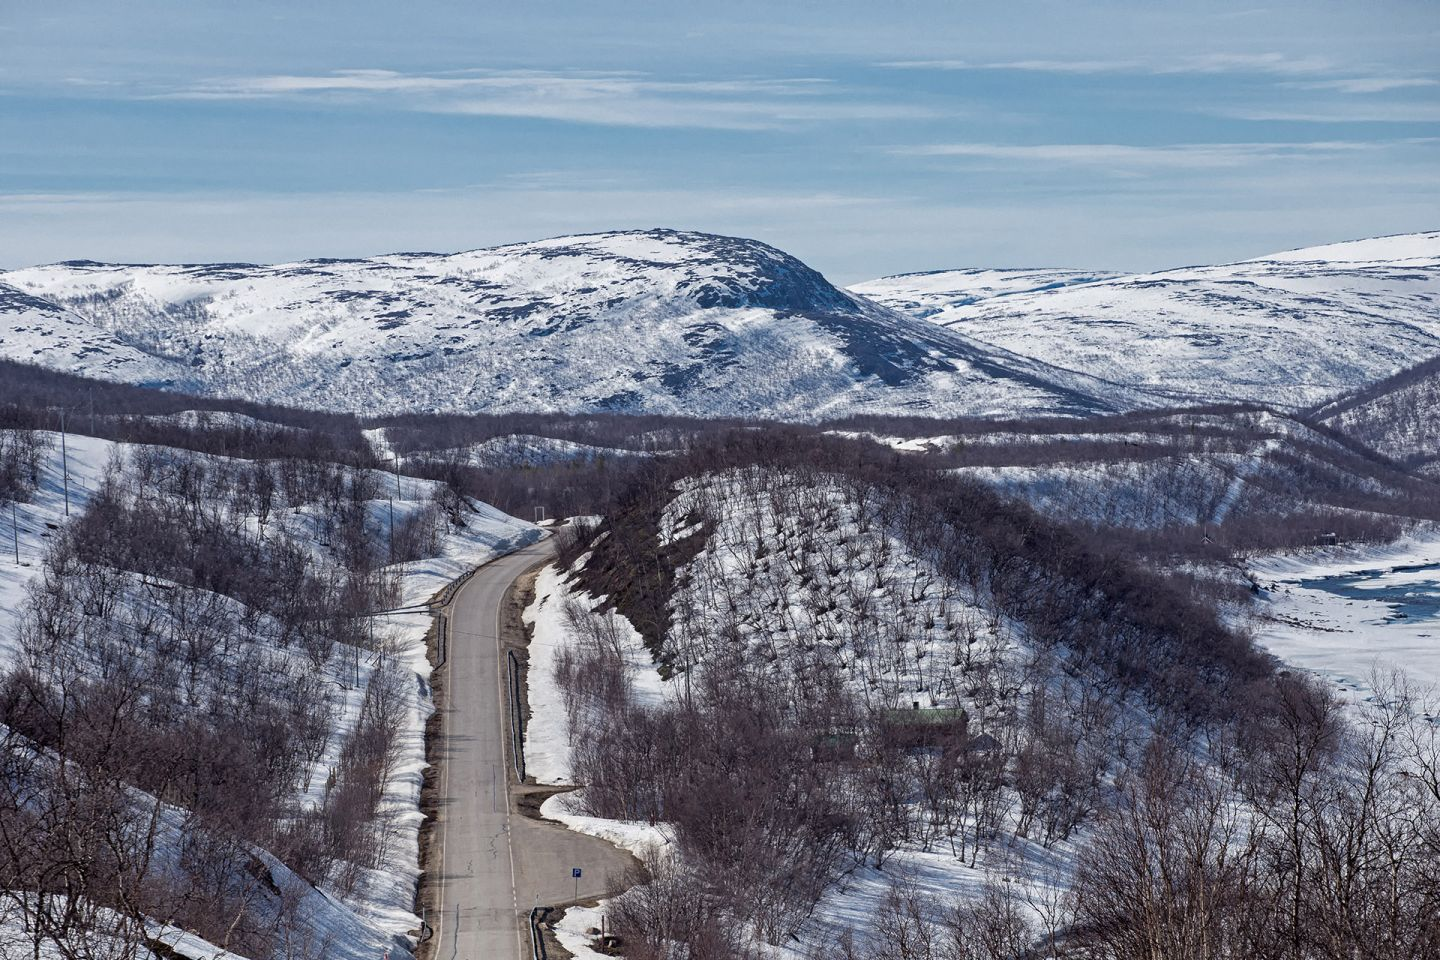 Empty street in the middle of arctic nature in Utsjoki, Lapland